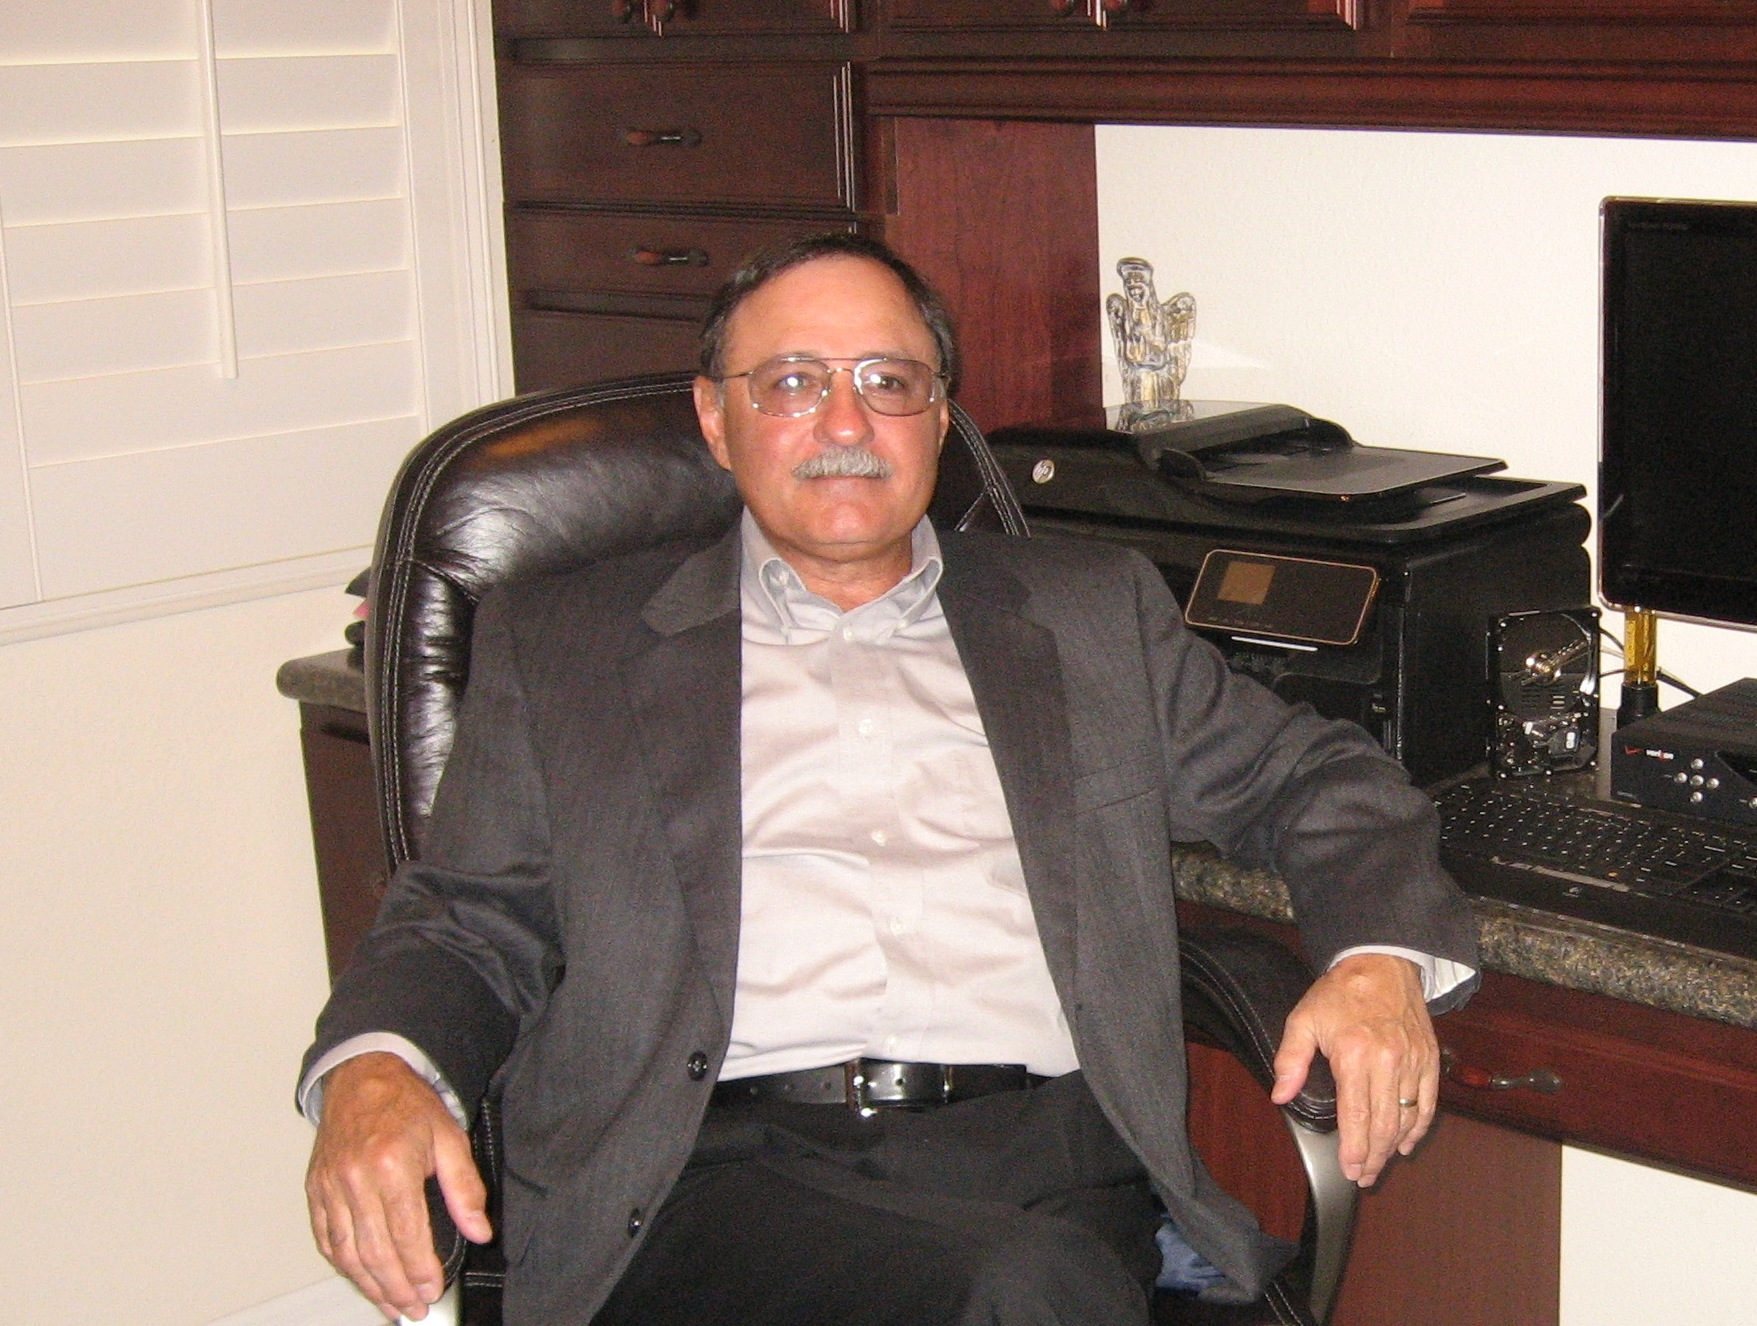 Michael V. Lauro, President of Lauro Consulting, Inc.